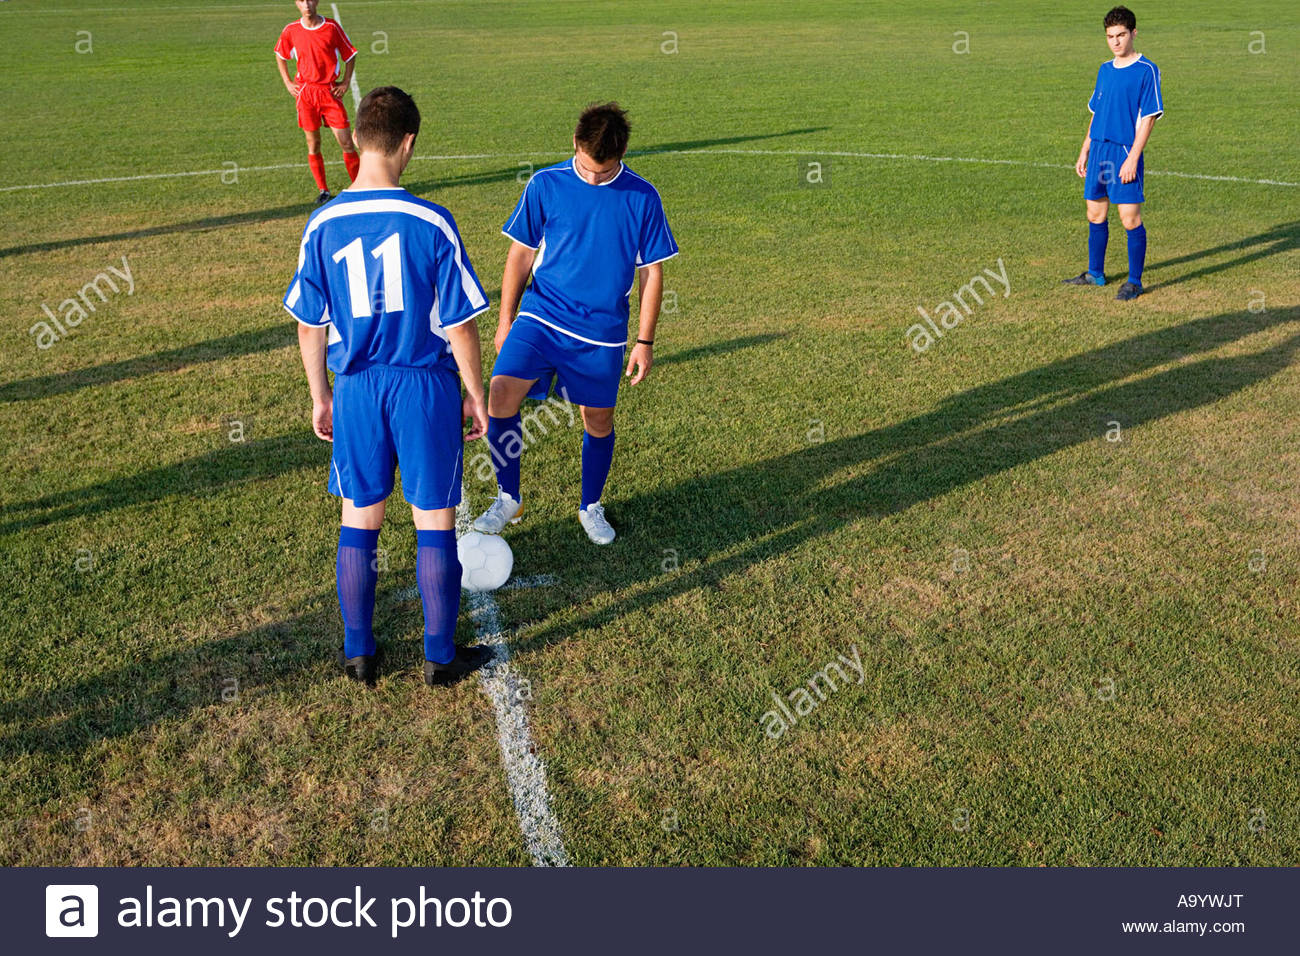 Footballers at beginning of game - Stock Image